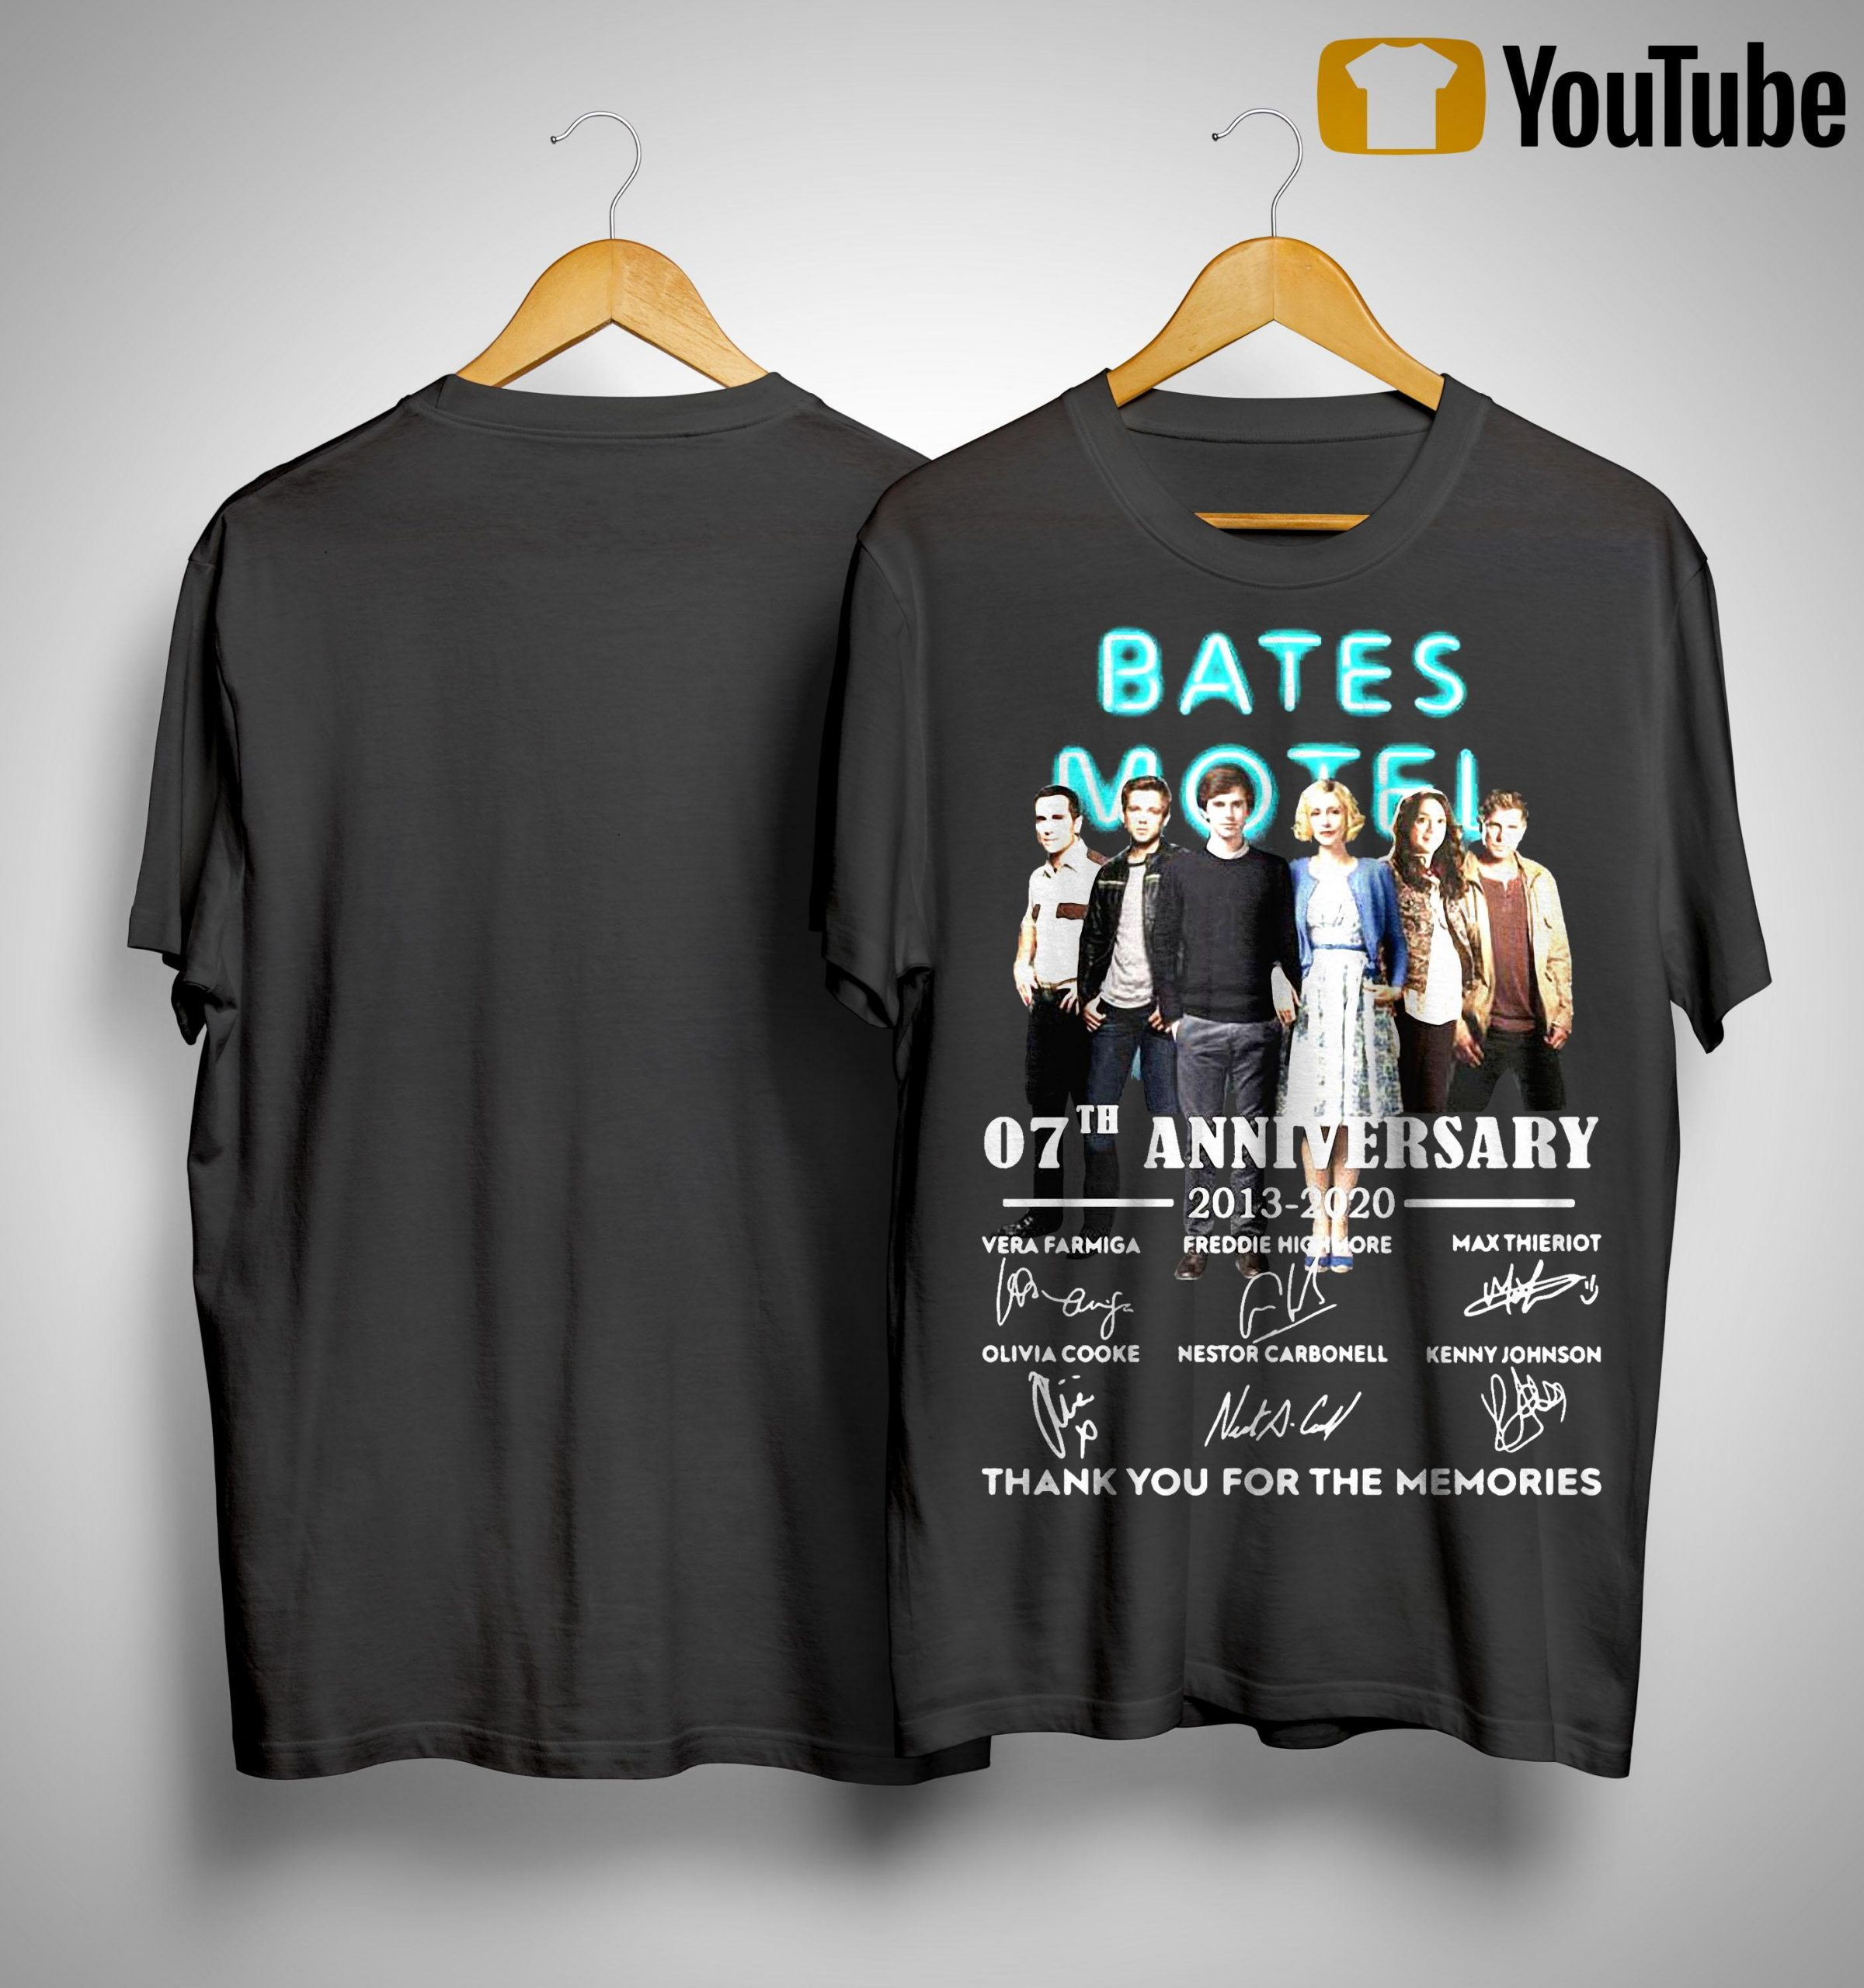 Bates Motel 07th Anniversary 2013 2020 All Signature Thank You For The Memories Shirt